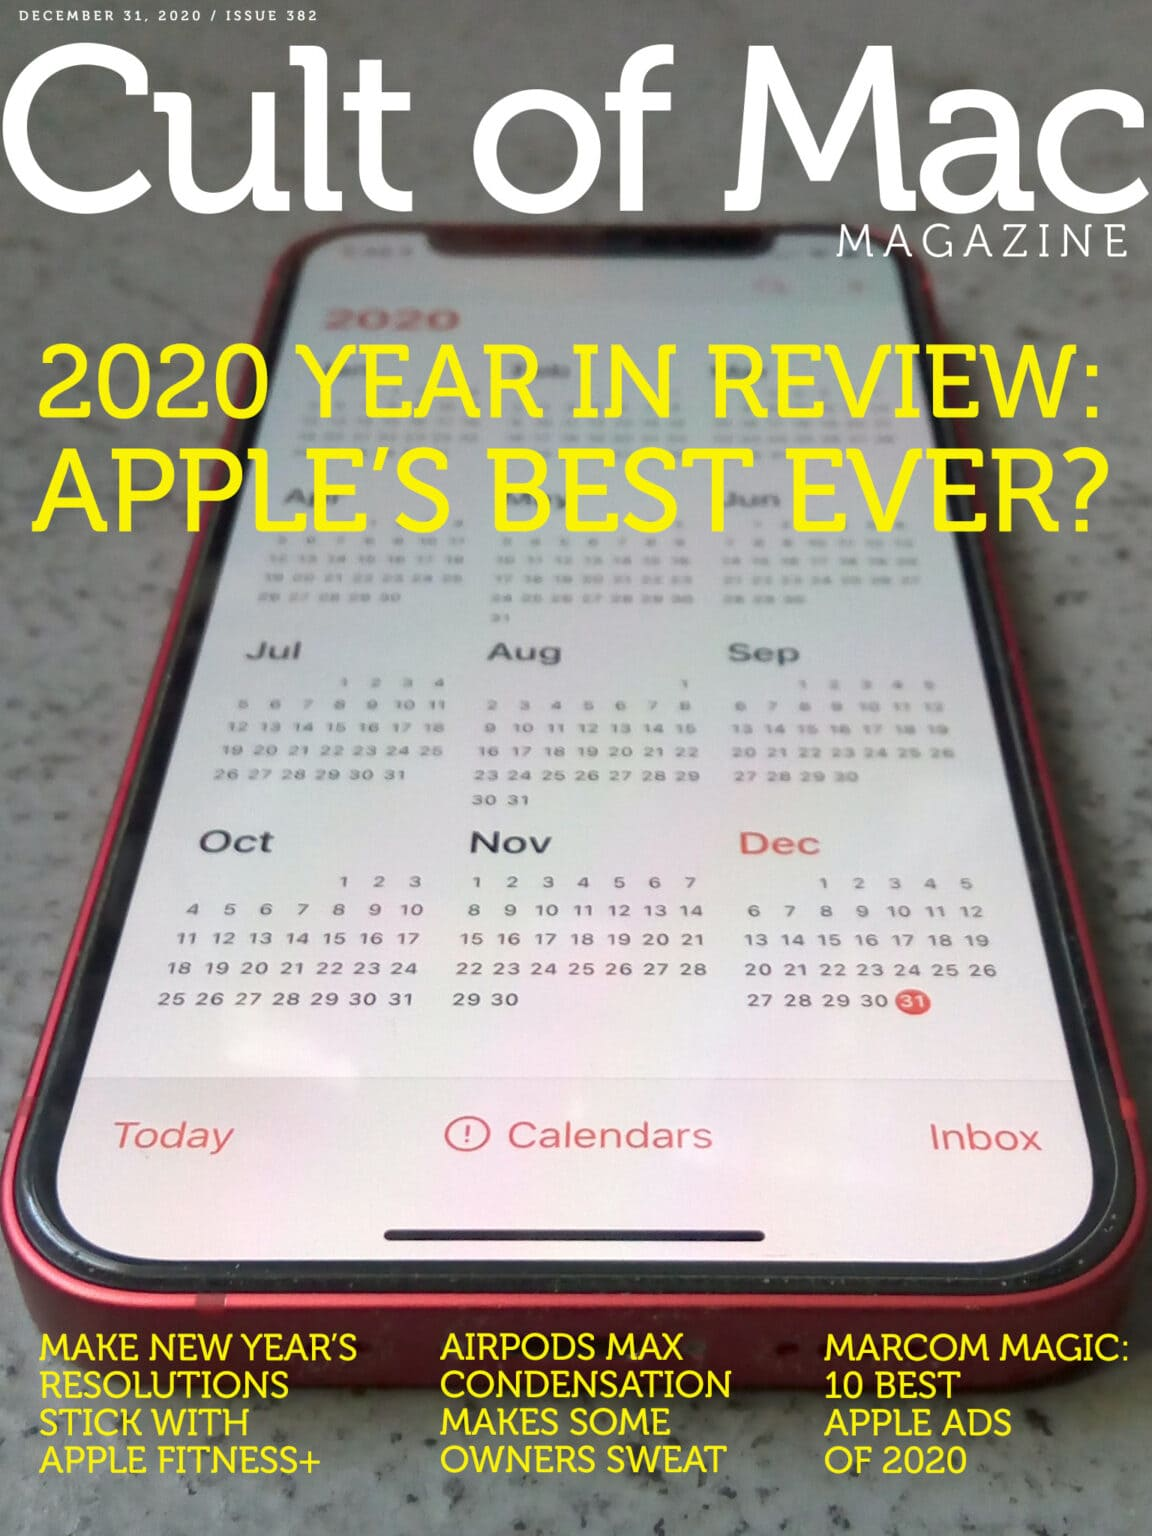 Can Apple pull off an even more amazing year in 2021?